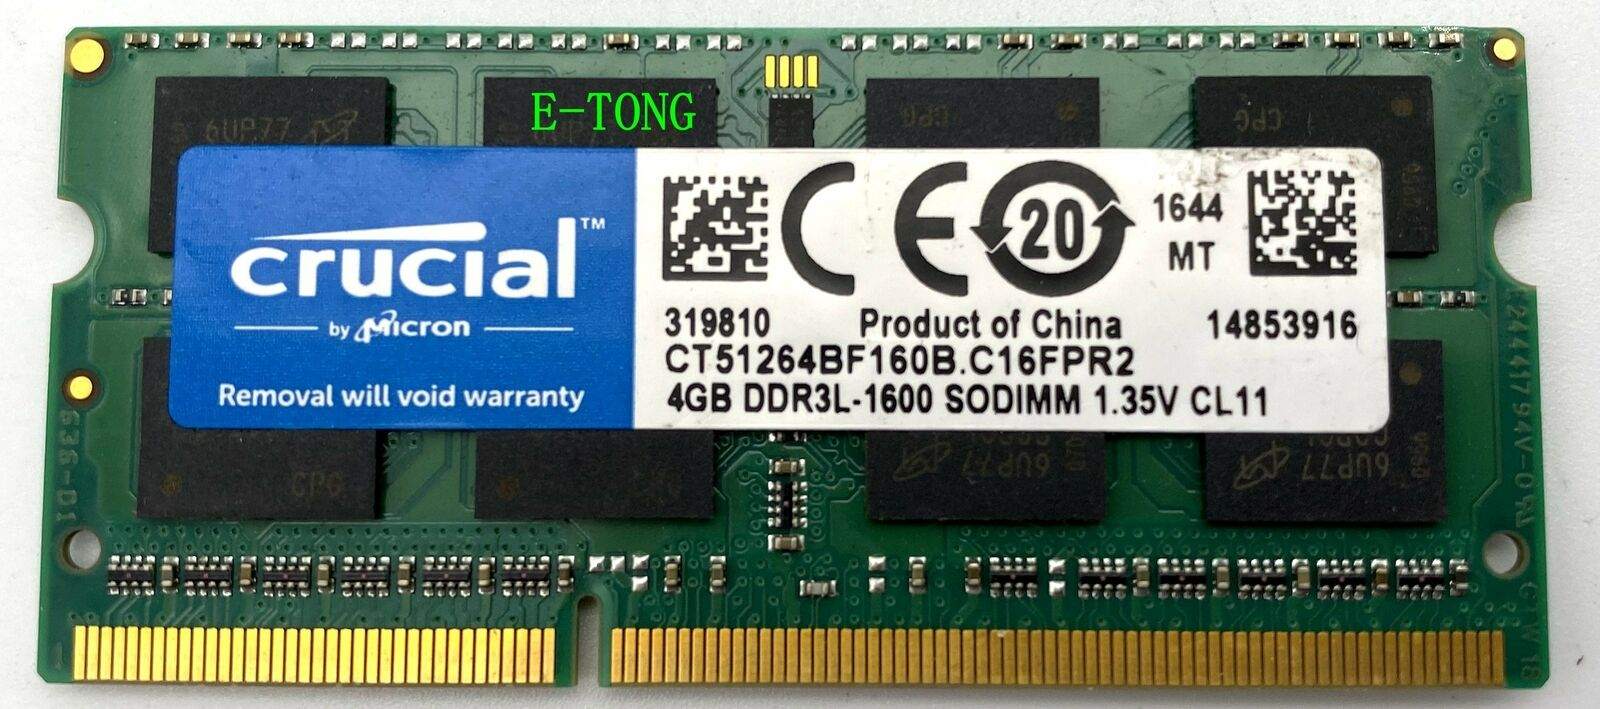 FMB-I Compatible with 3X41T Replacement for Dell DIMM 2GB 1600 1RX16 4G DDR3L